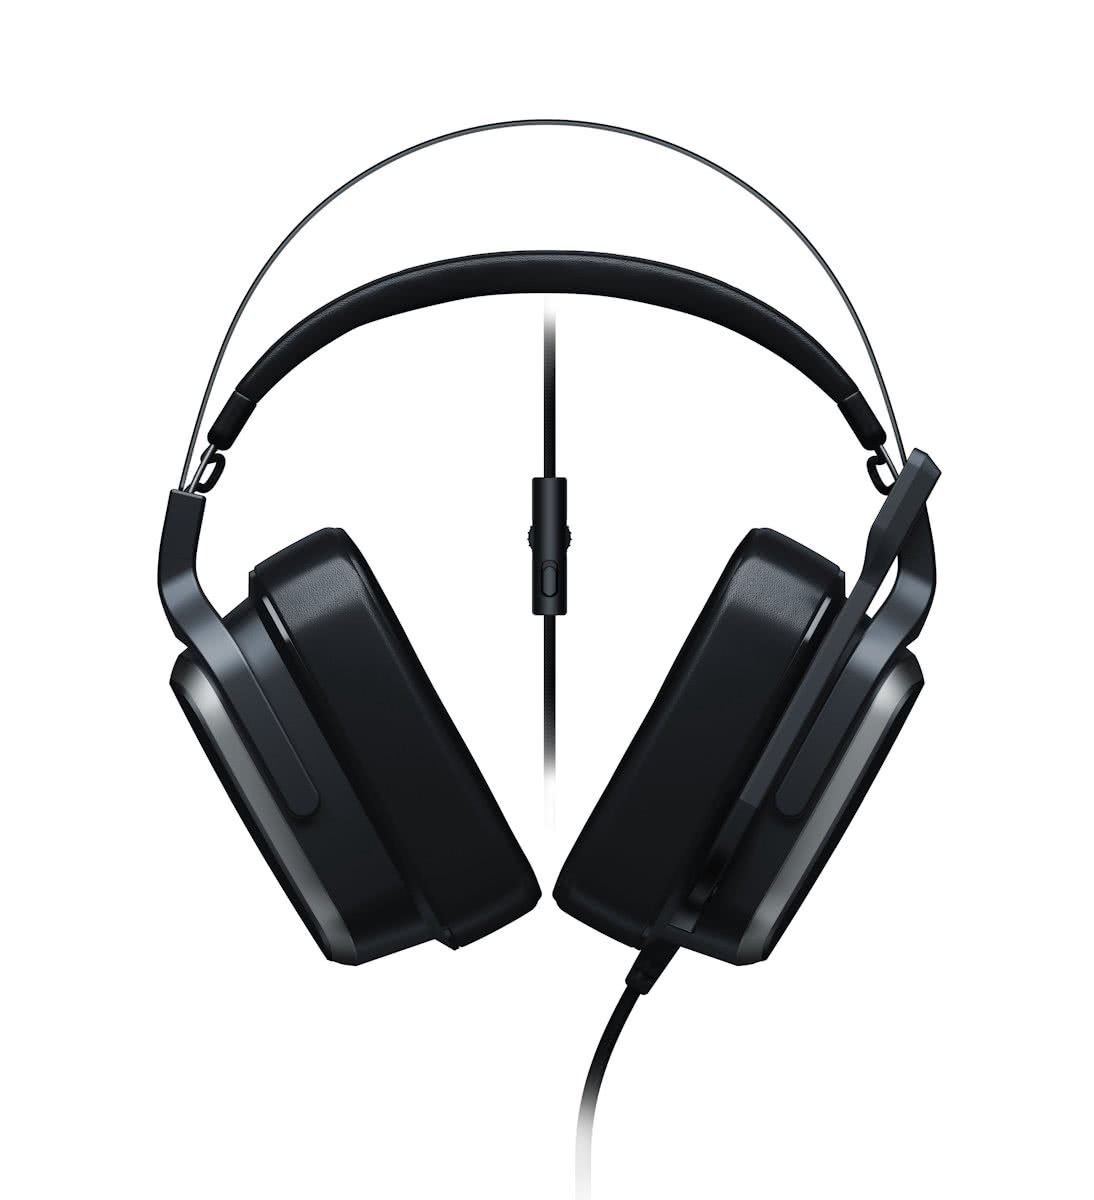 Razer Tiamat 2.2 V2 - Gaming Headset - PC + Mac + Xbox One + PS4 + Mobile